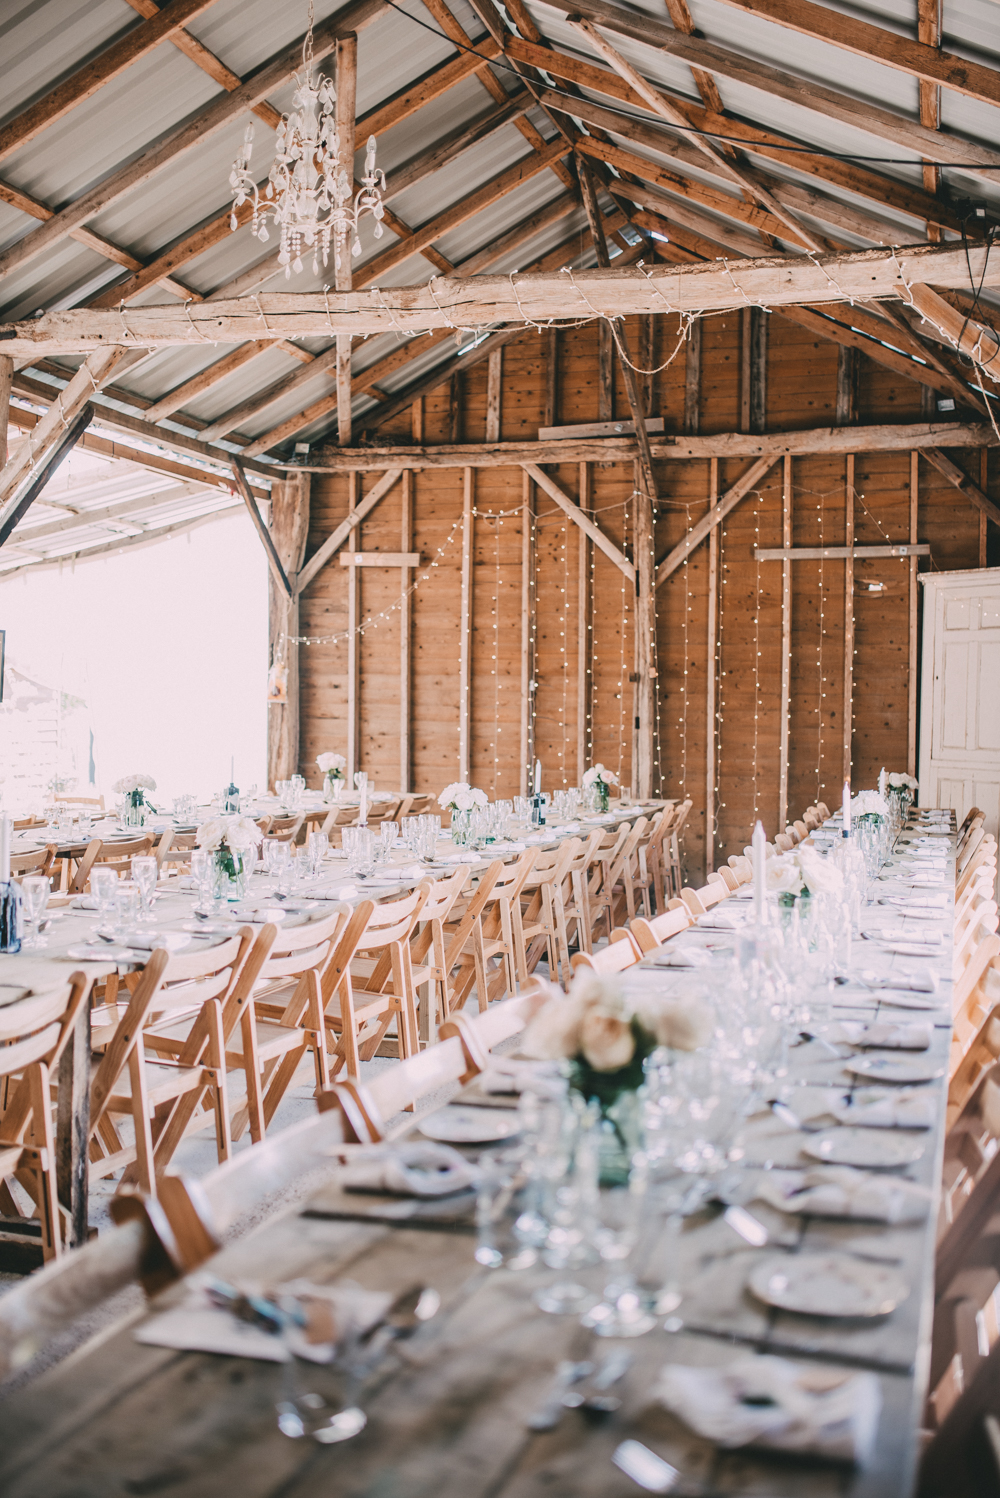 Romantic Barn Wedding With A Gin Bar